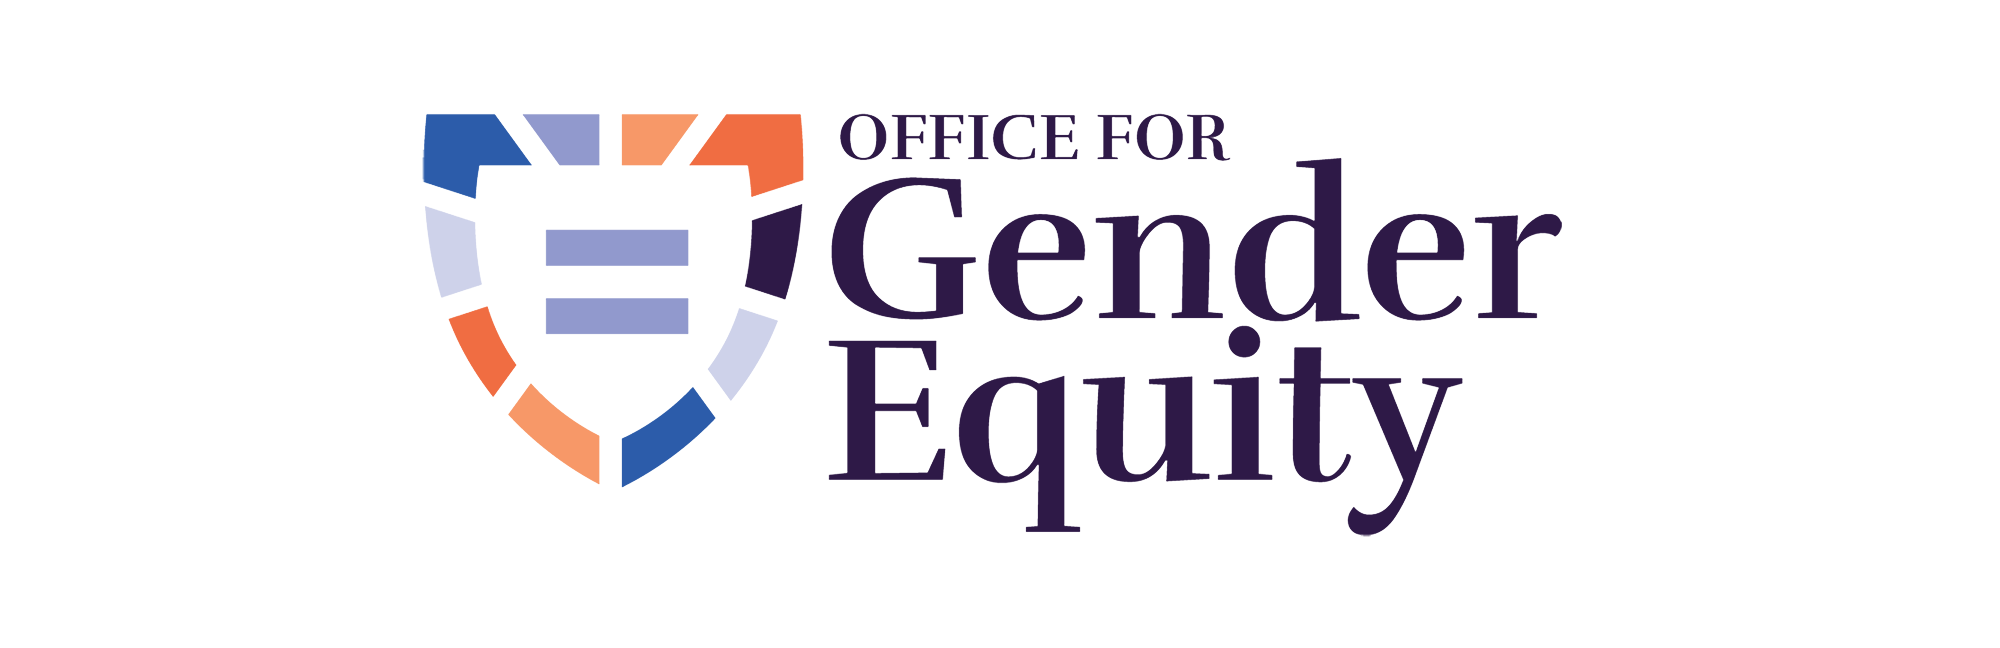 Office for Gender Equity logo